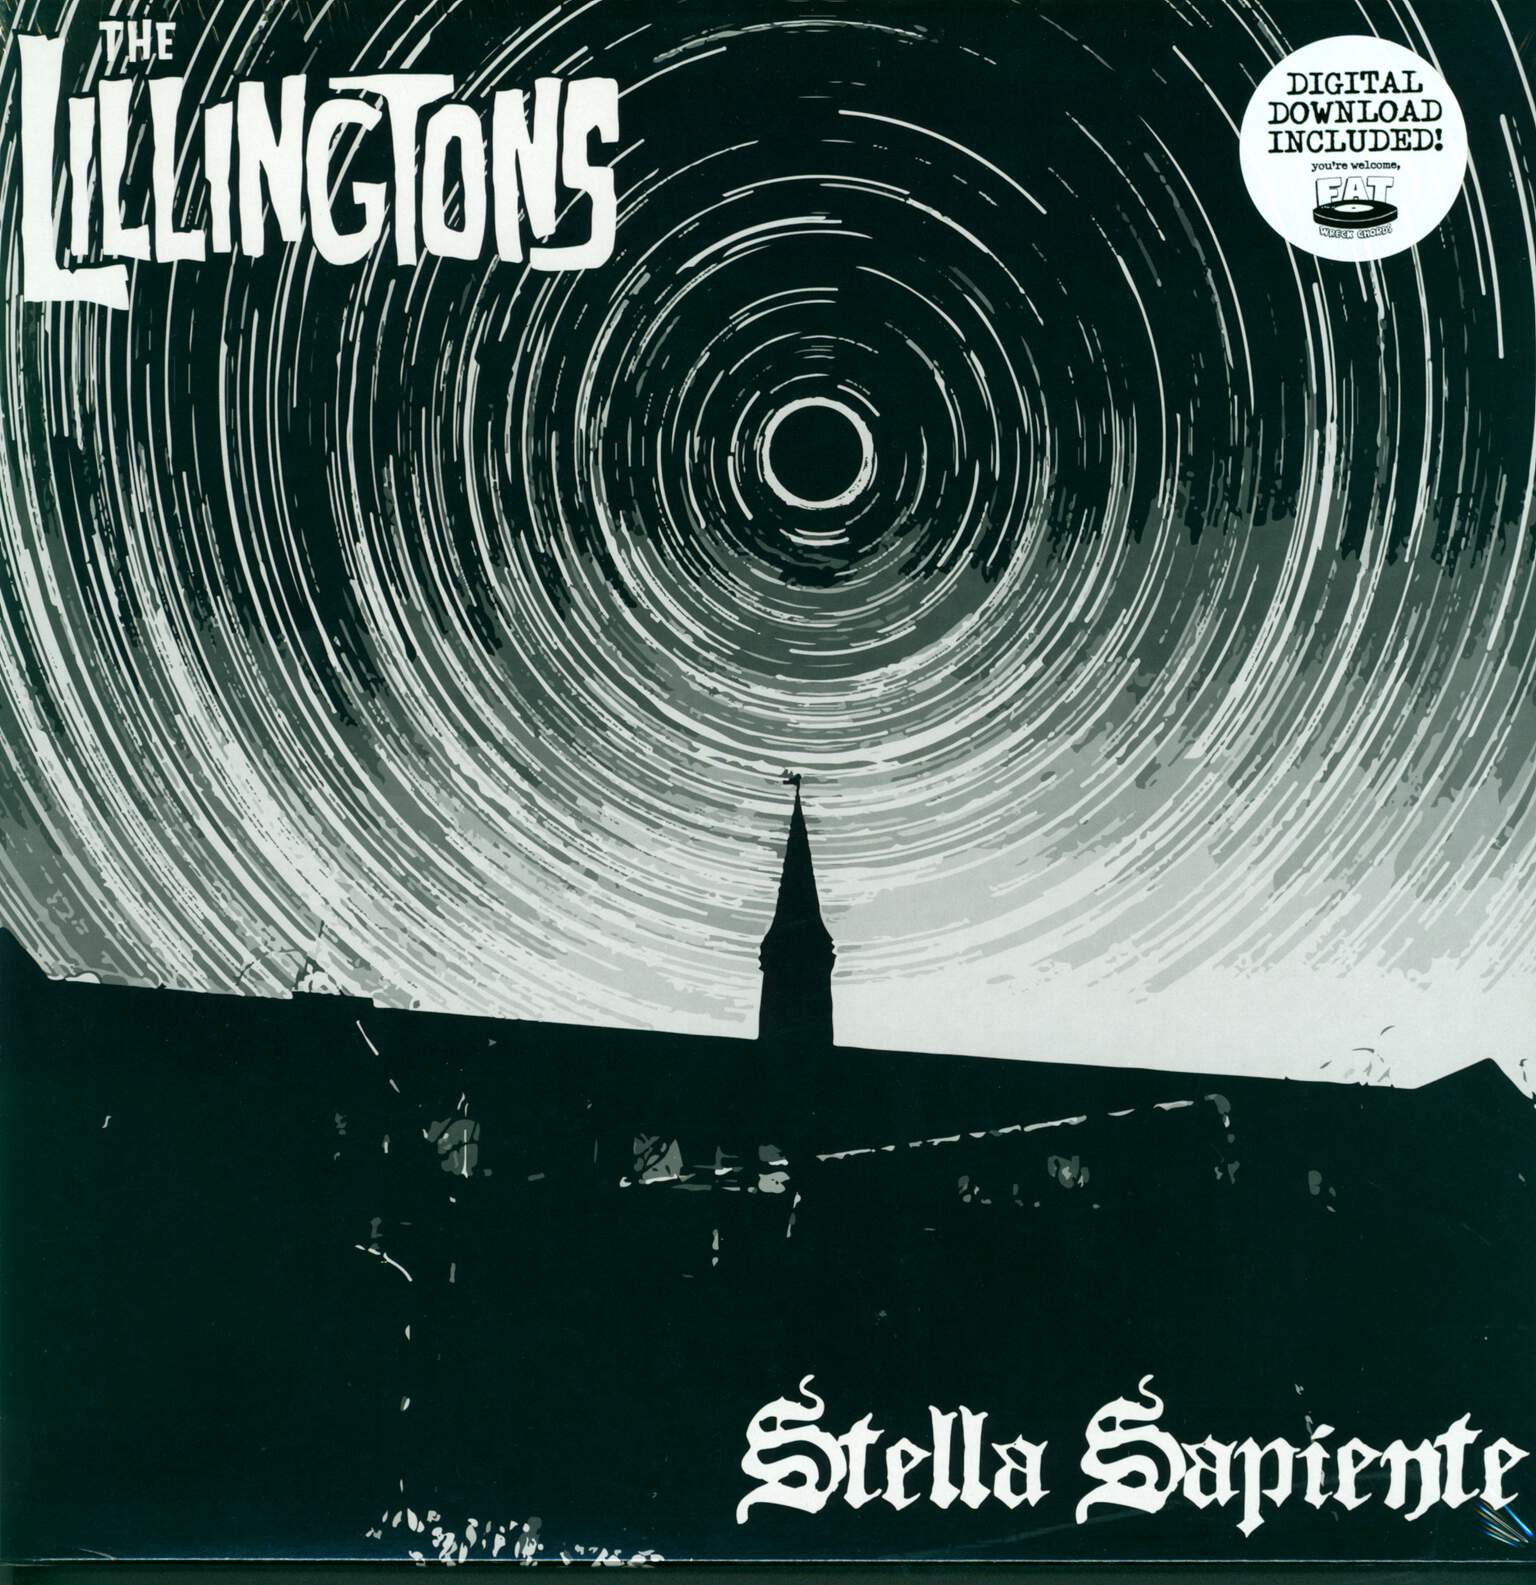 The Lillingtons: Stella Sapiente, 1×LP (Vinyl)